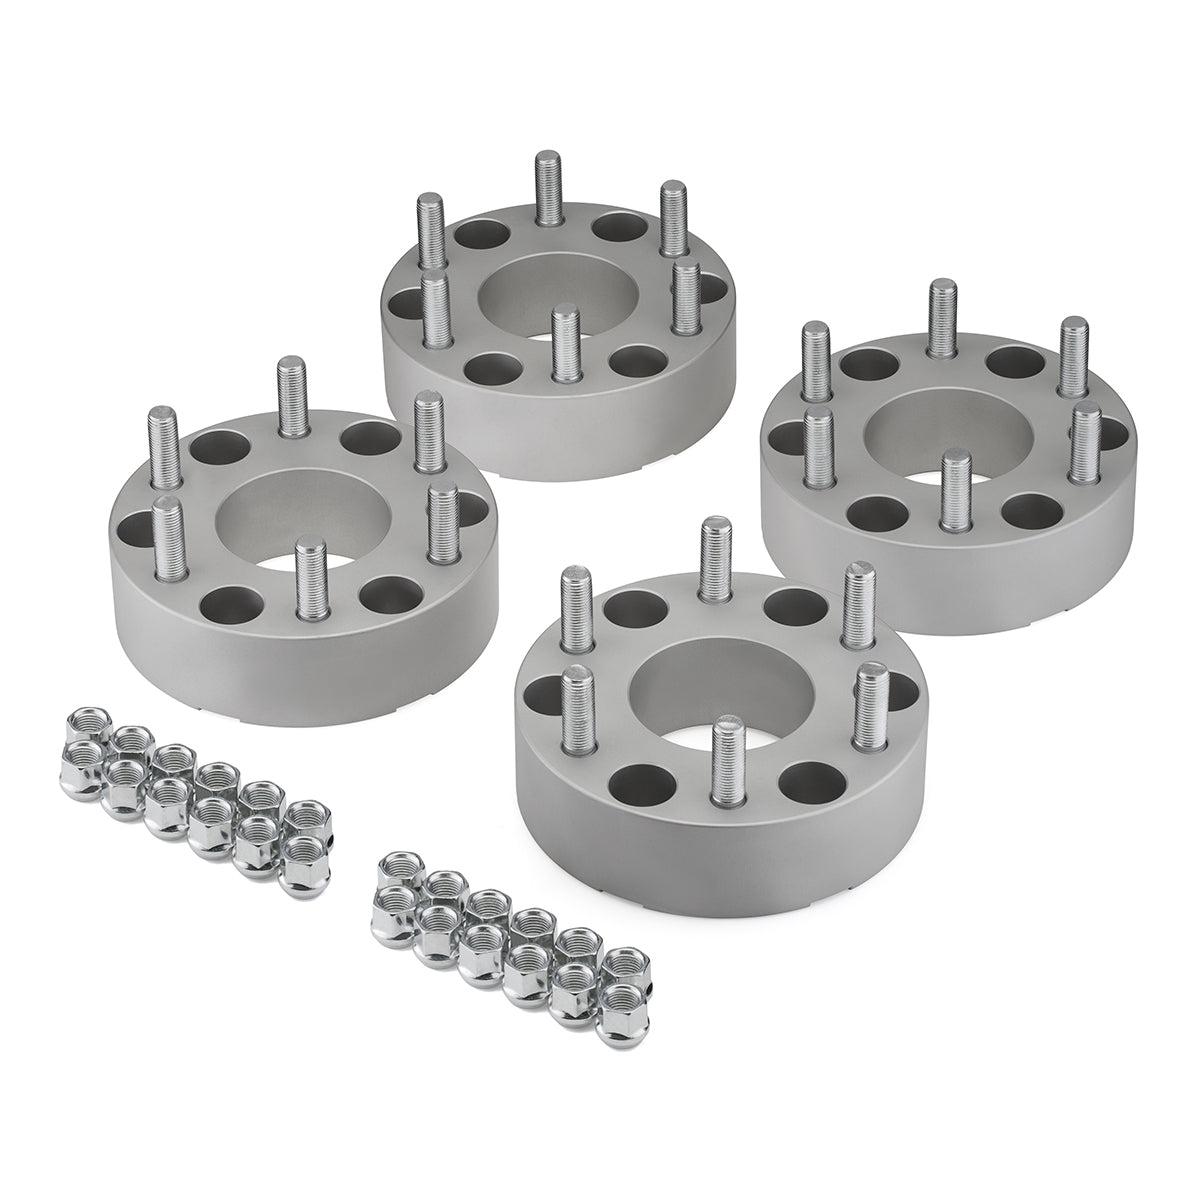 1999-2019 Chevy Silverado 1500 Lug-Centric Wheel Spacer (4pc)